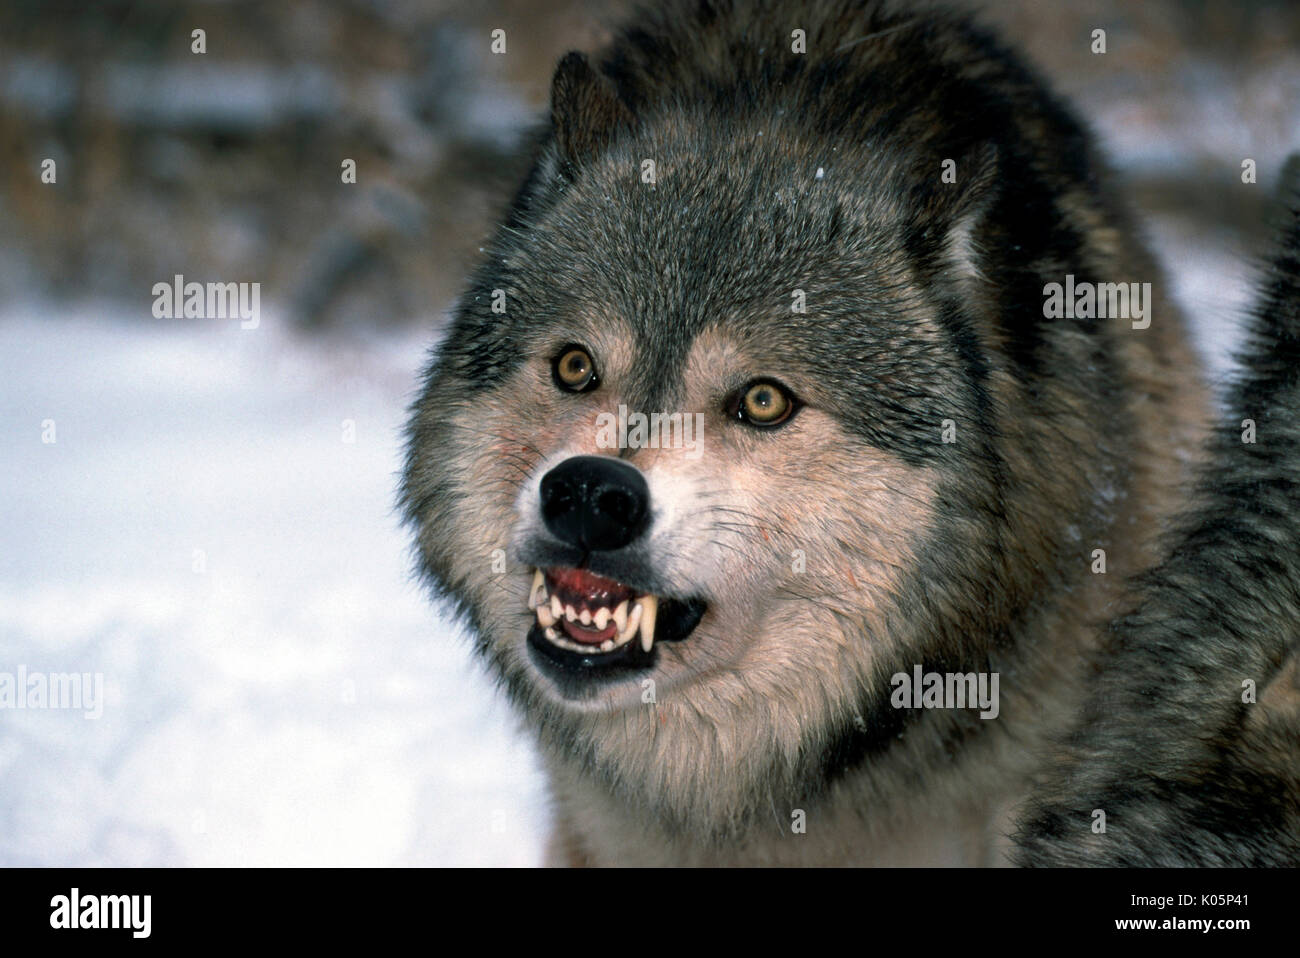 Timber or Grey Wolf, Canis Lupus, Minnesota  USA  single wolf showing agggressive behaviour, growling, snarling, baring teeth, staring, eyes - Stock Image